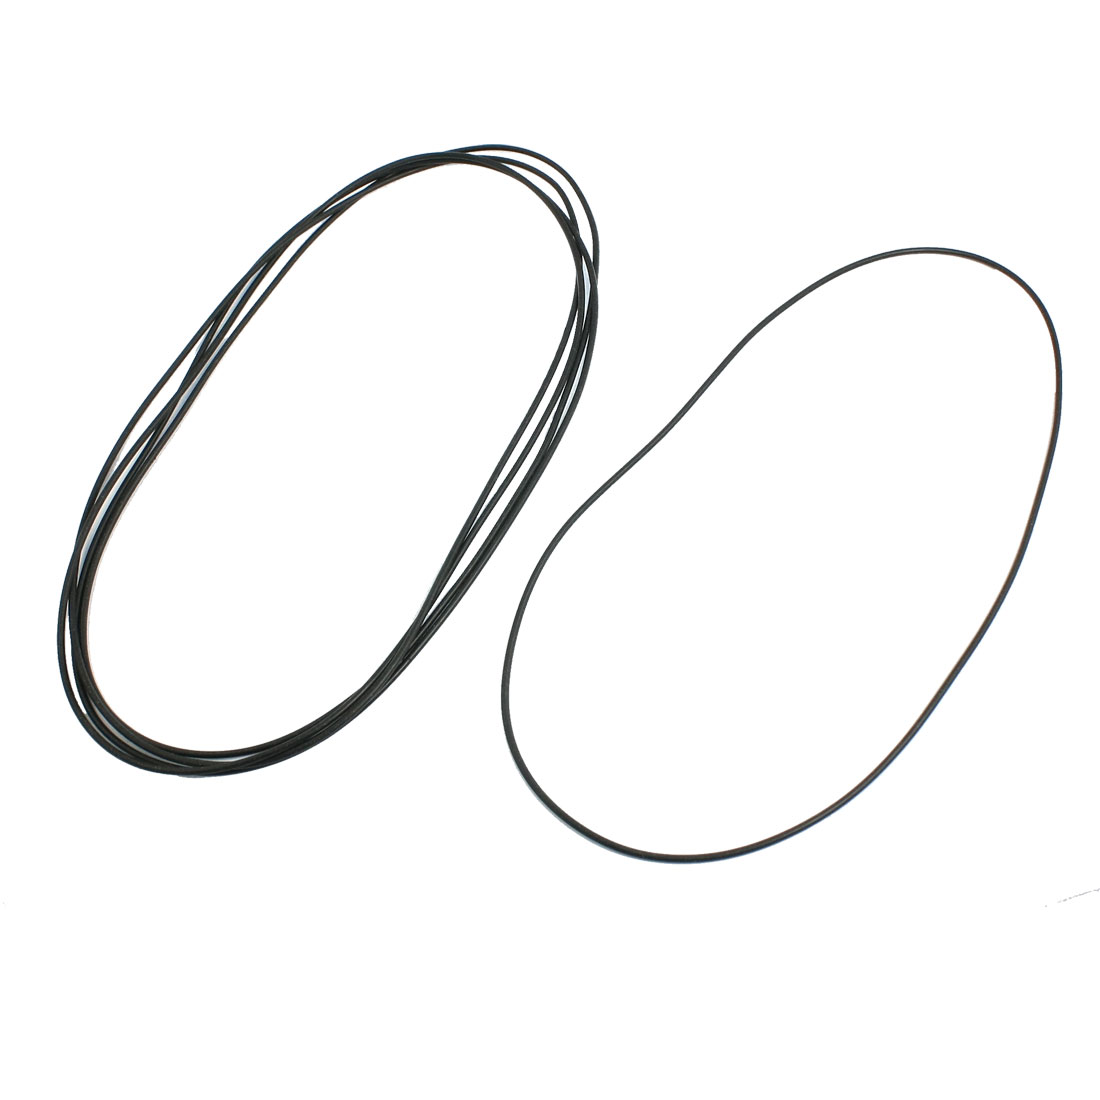 5 Pcs Oil Seal O Rings Black Nitrile Rubber 165mm OD 2mm Thickness